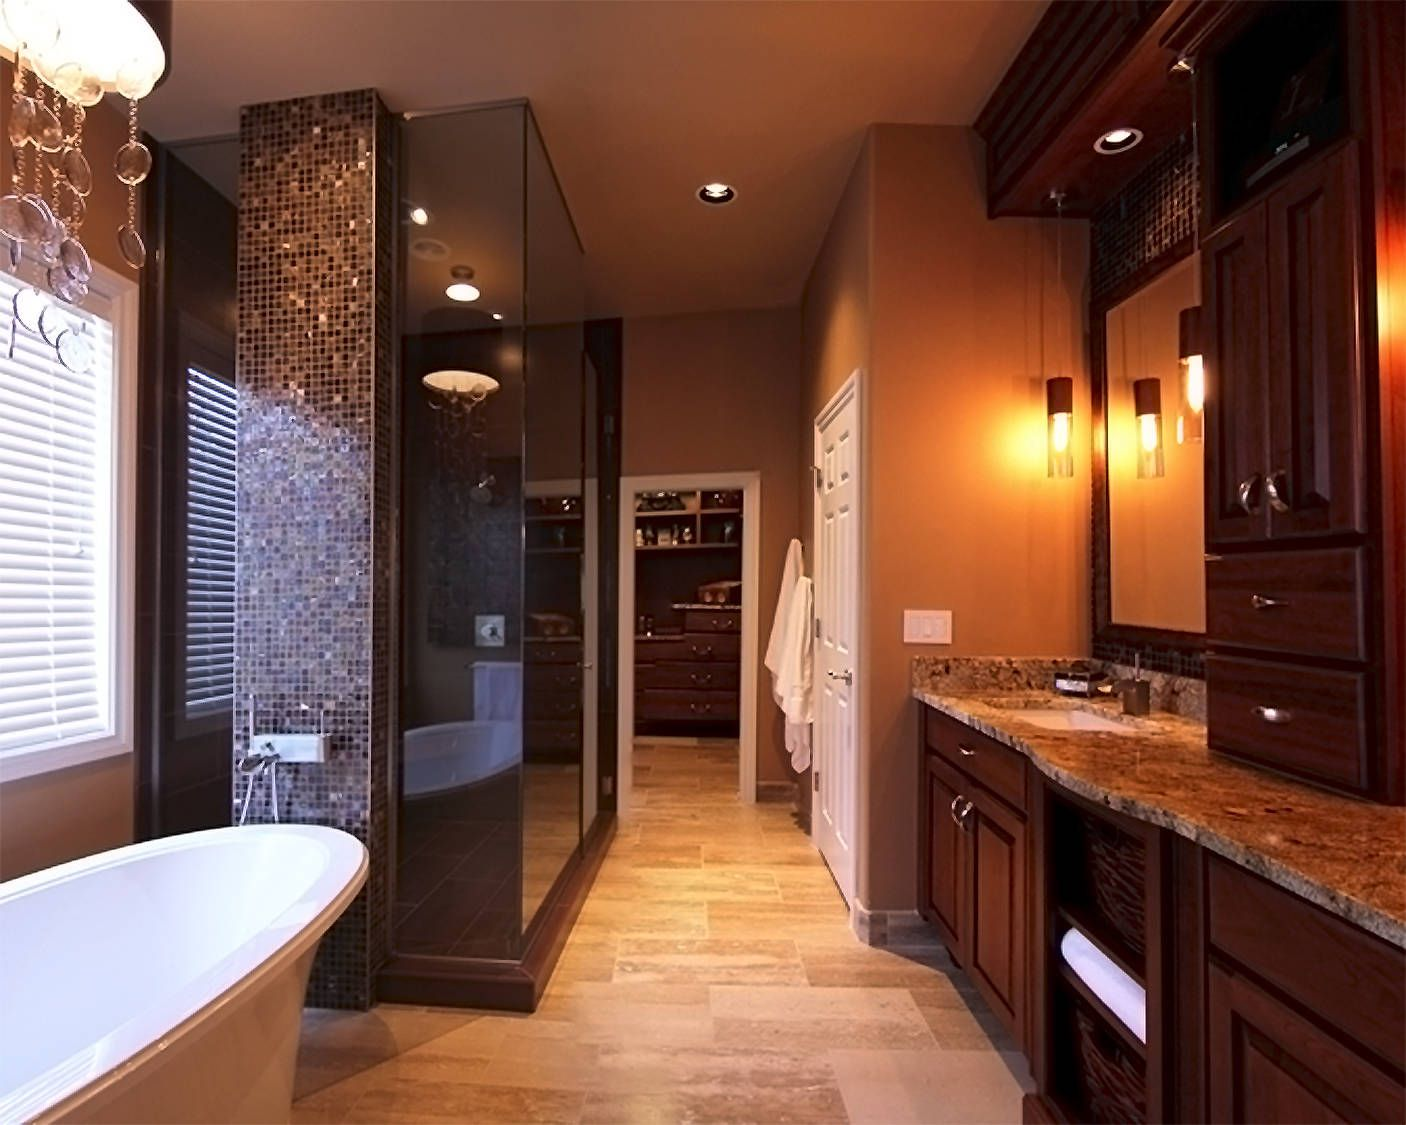 Get Some Great Ideas For Your Bathroom Remodel With These Pictures